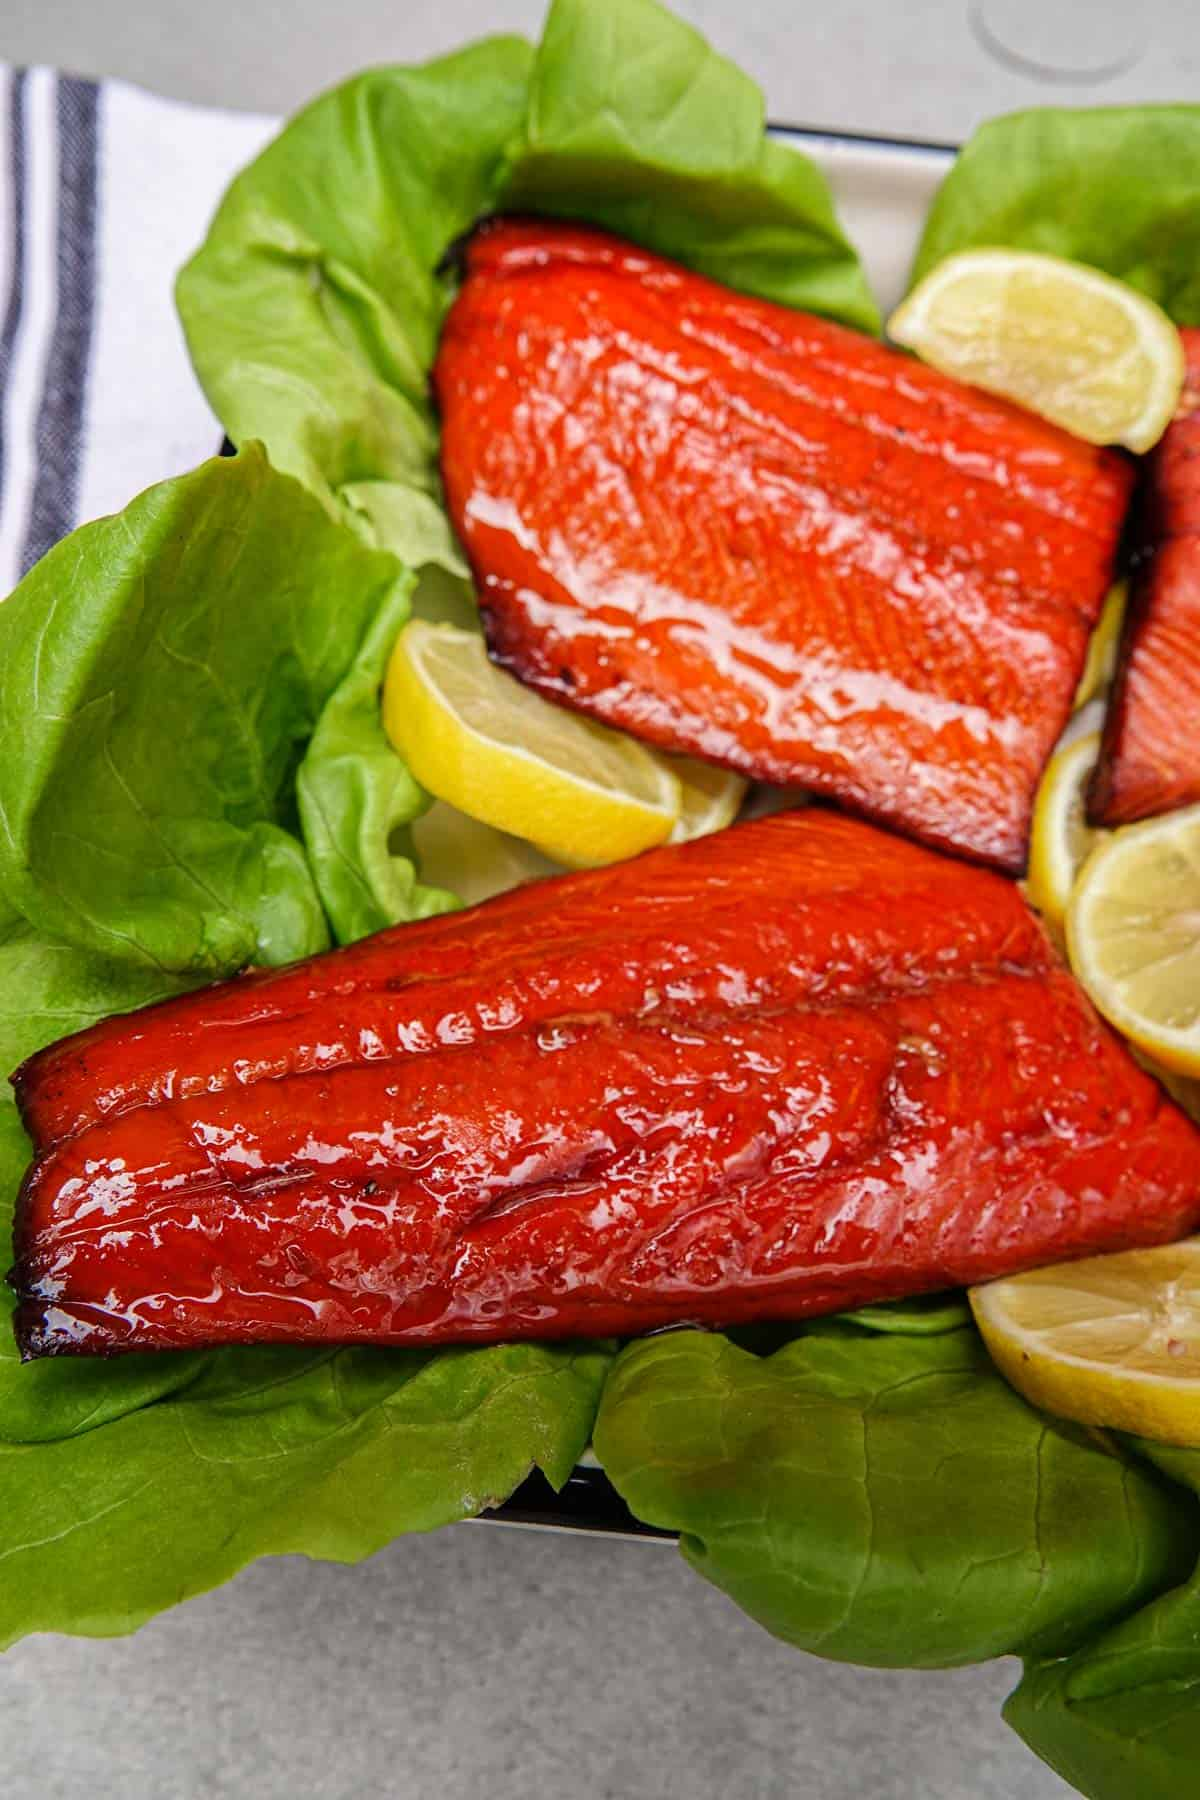 Smoked salmon on bed of lettuce with lemon slices